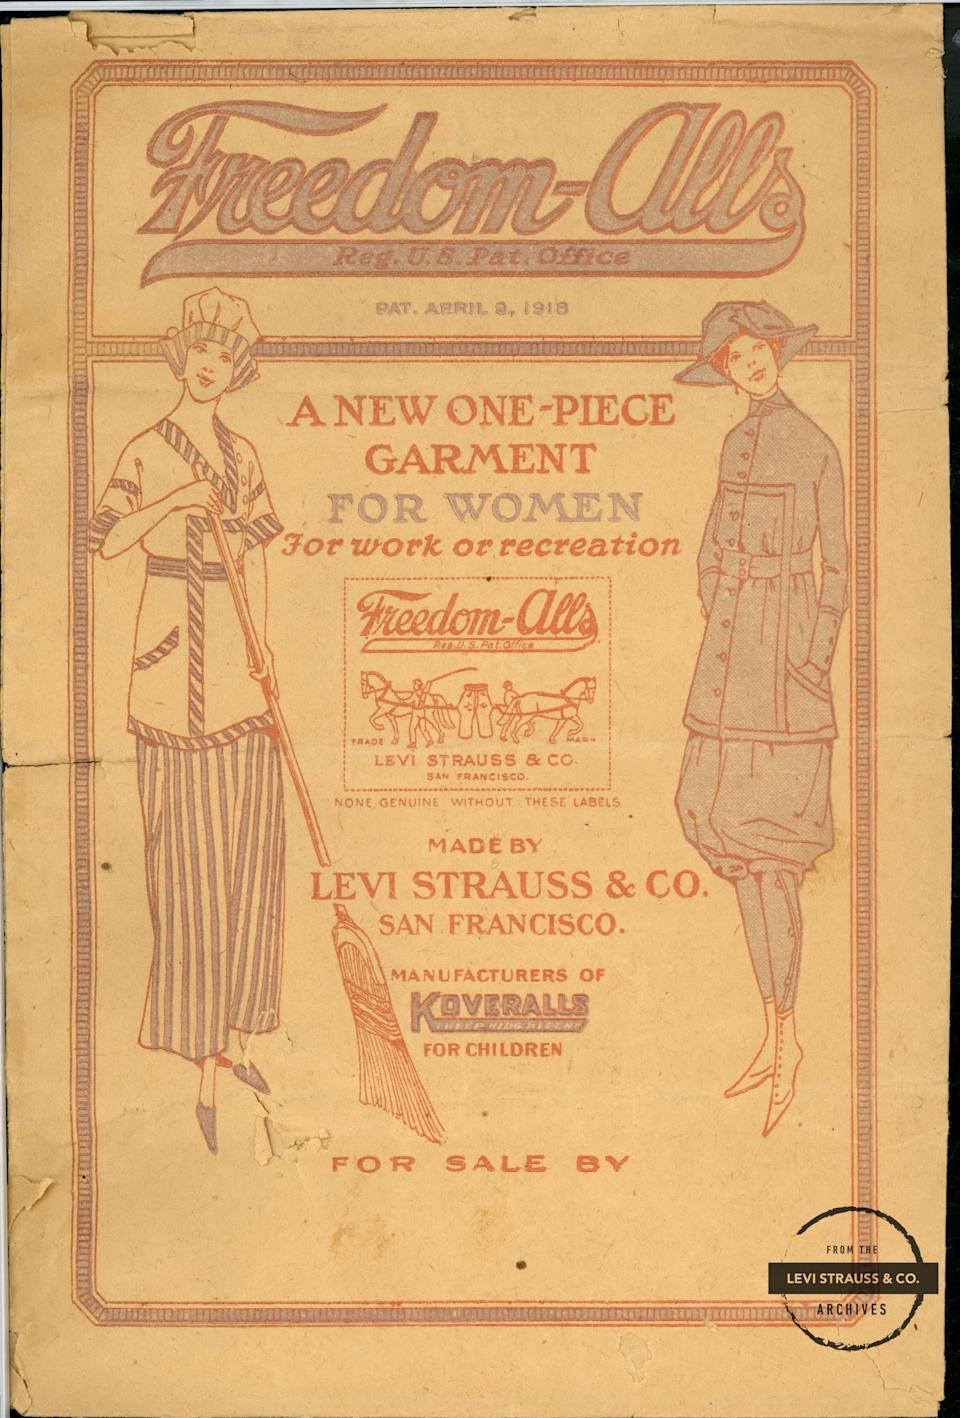 """An ad for Levi's Freedom-Alls, which debuted in 1918 as a way for women to participate more comfortably in outdoor activities at """"dude ranches,"""" which were a popular vacation choice at the time. Just over a decade later, Levi's introduced """"Lady Levi's."""" (Photo: Levi Strauss Co.)"""